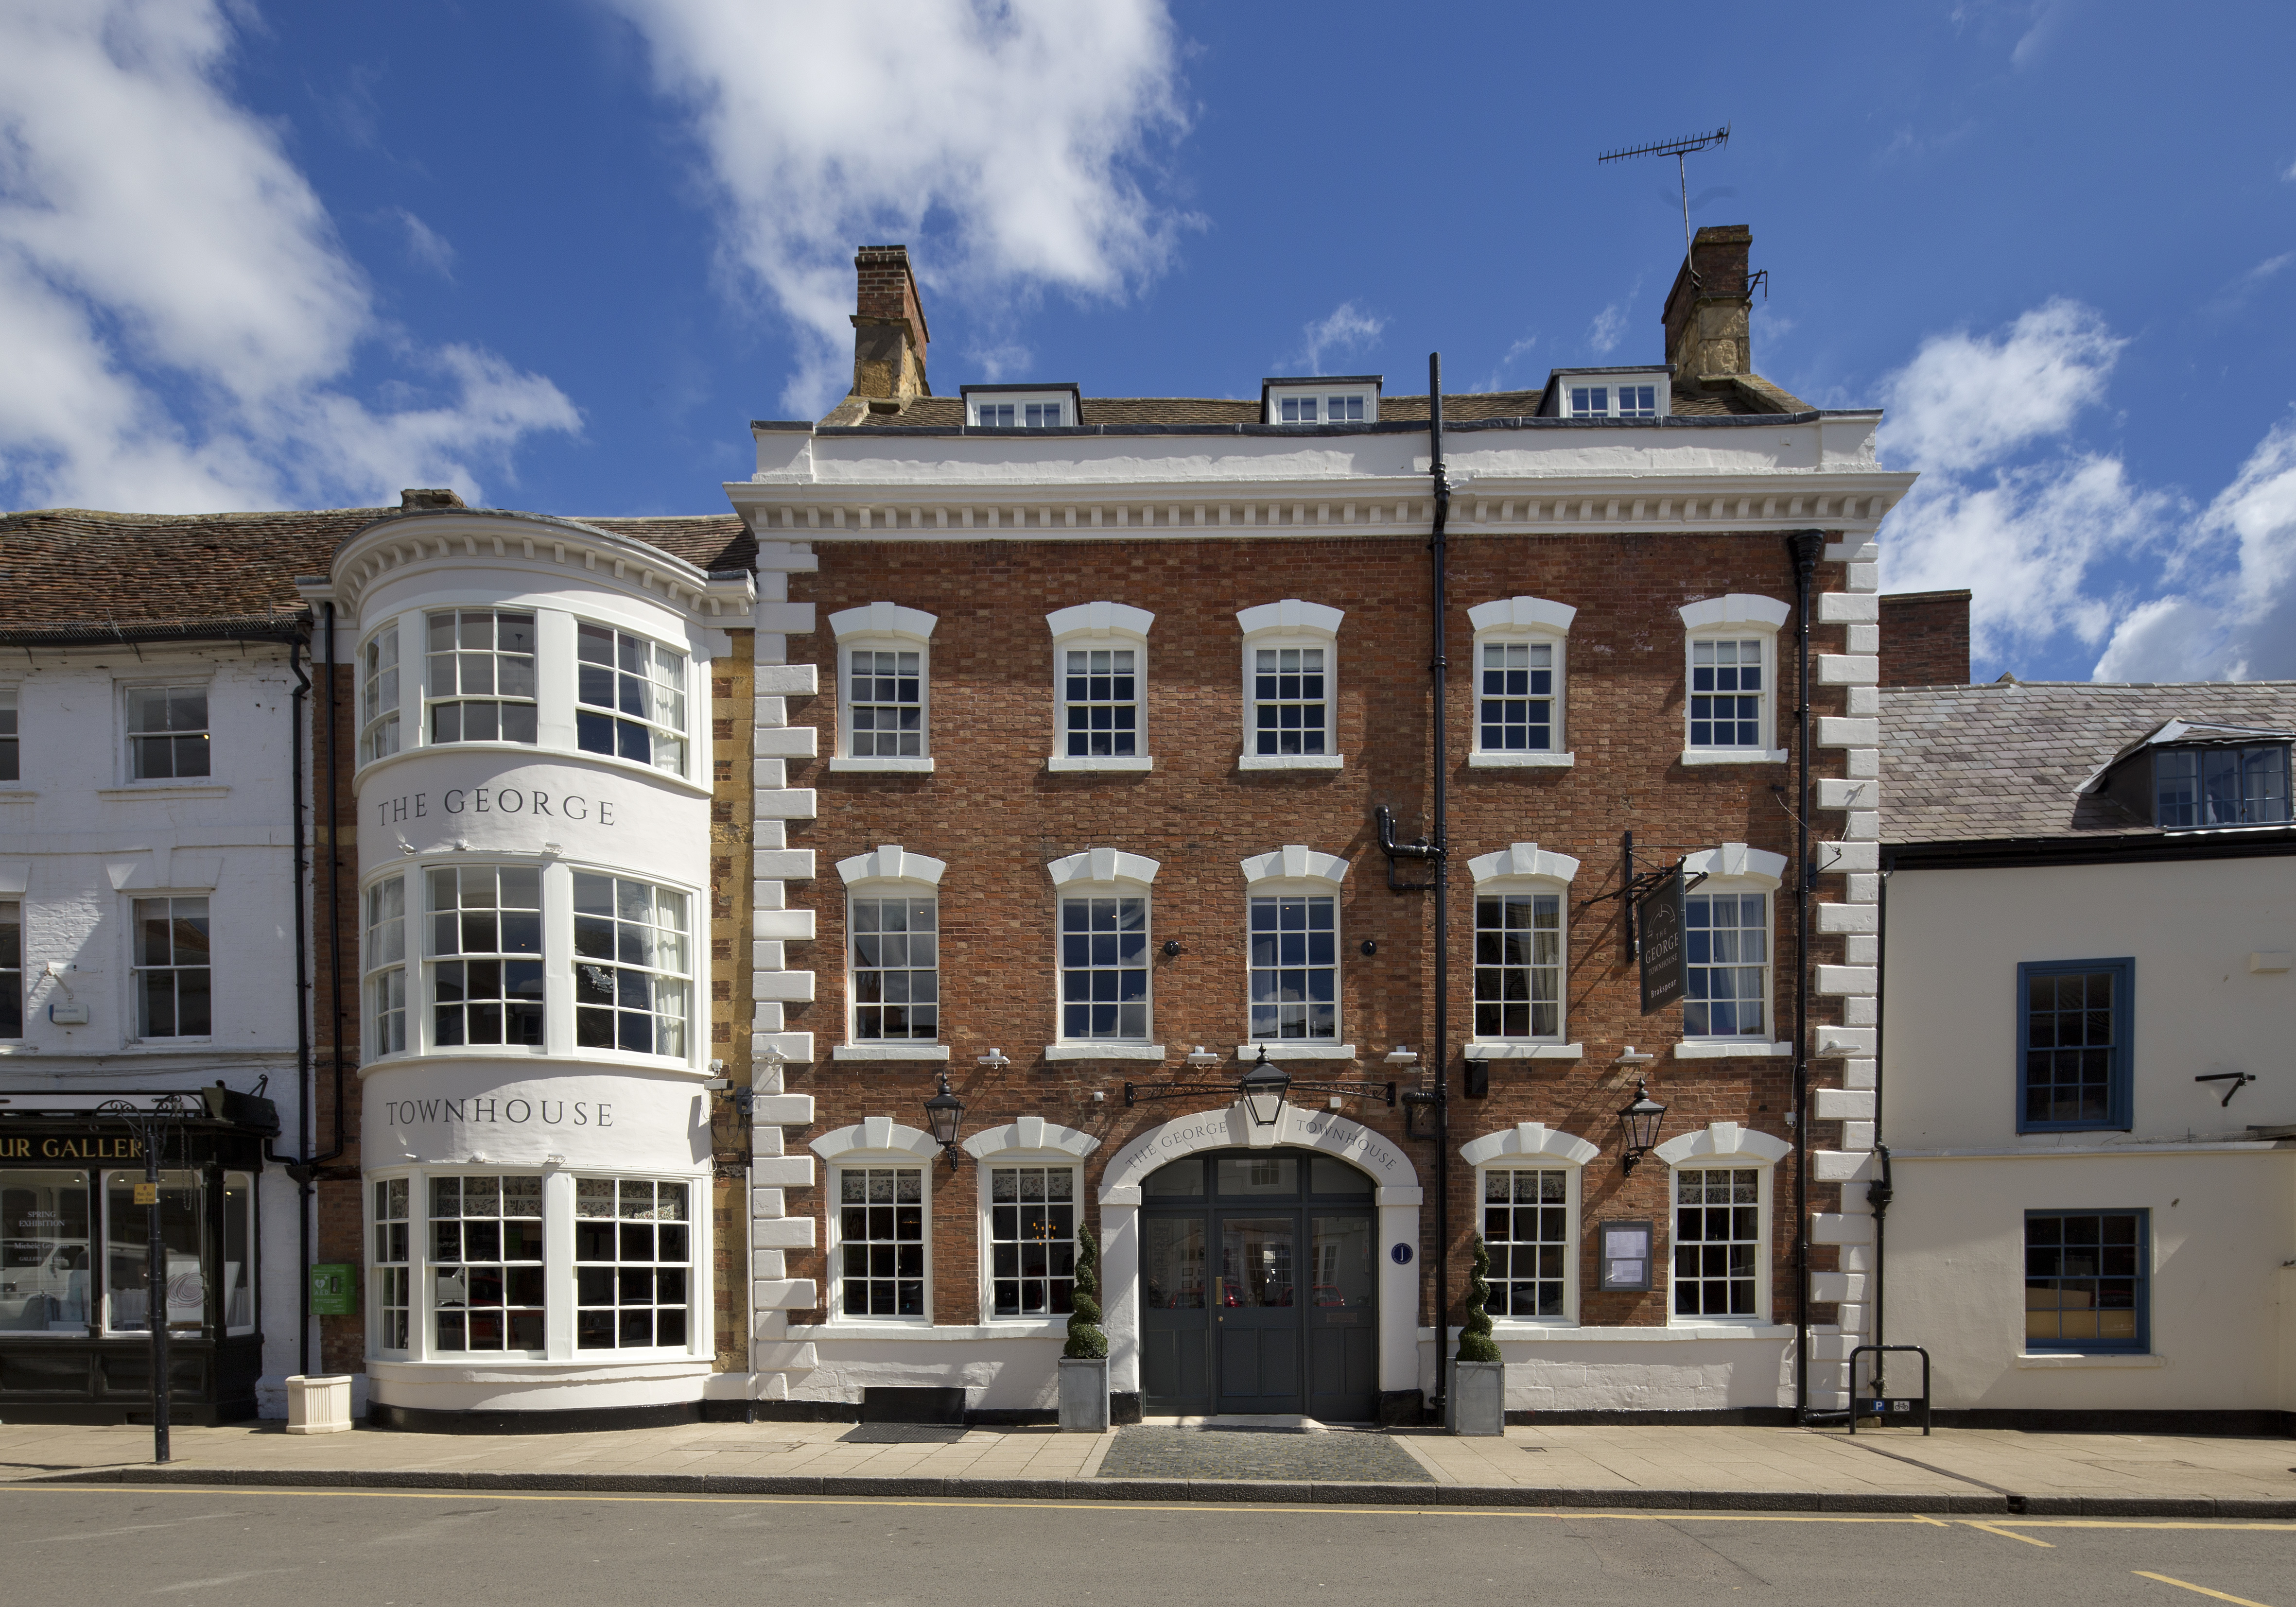 The George Townhouse, Shipston, Warwickshire